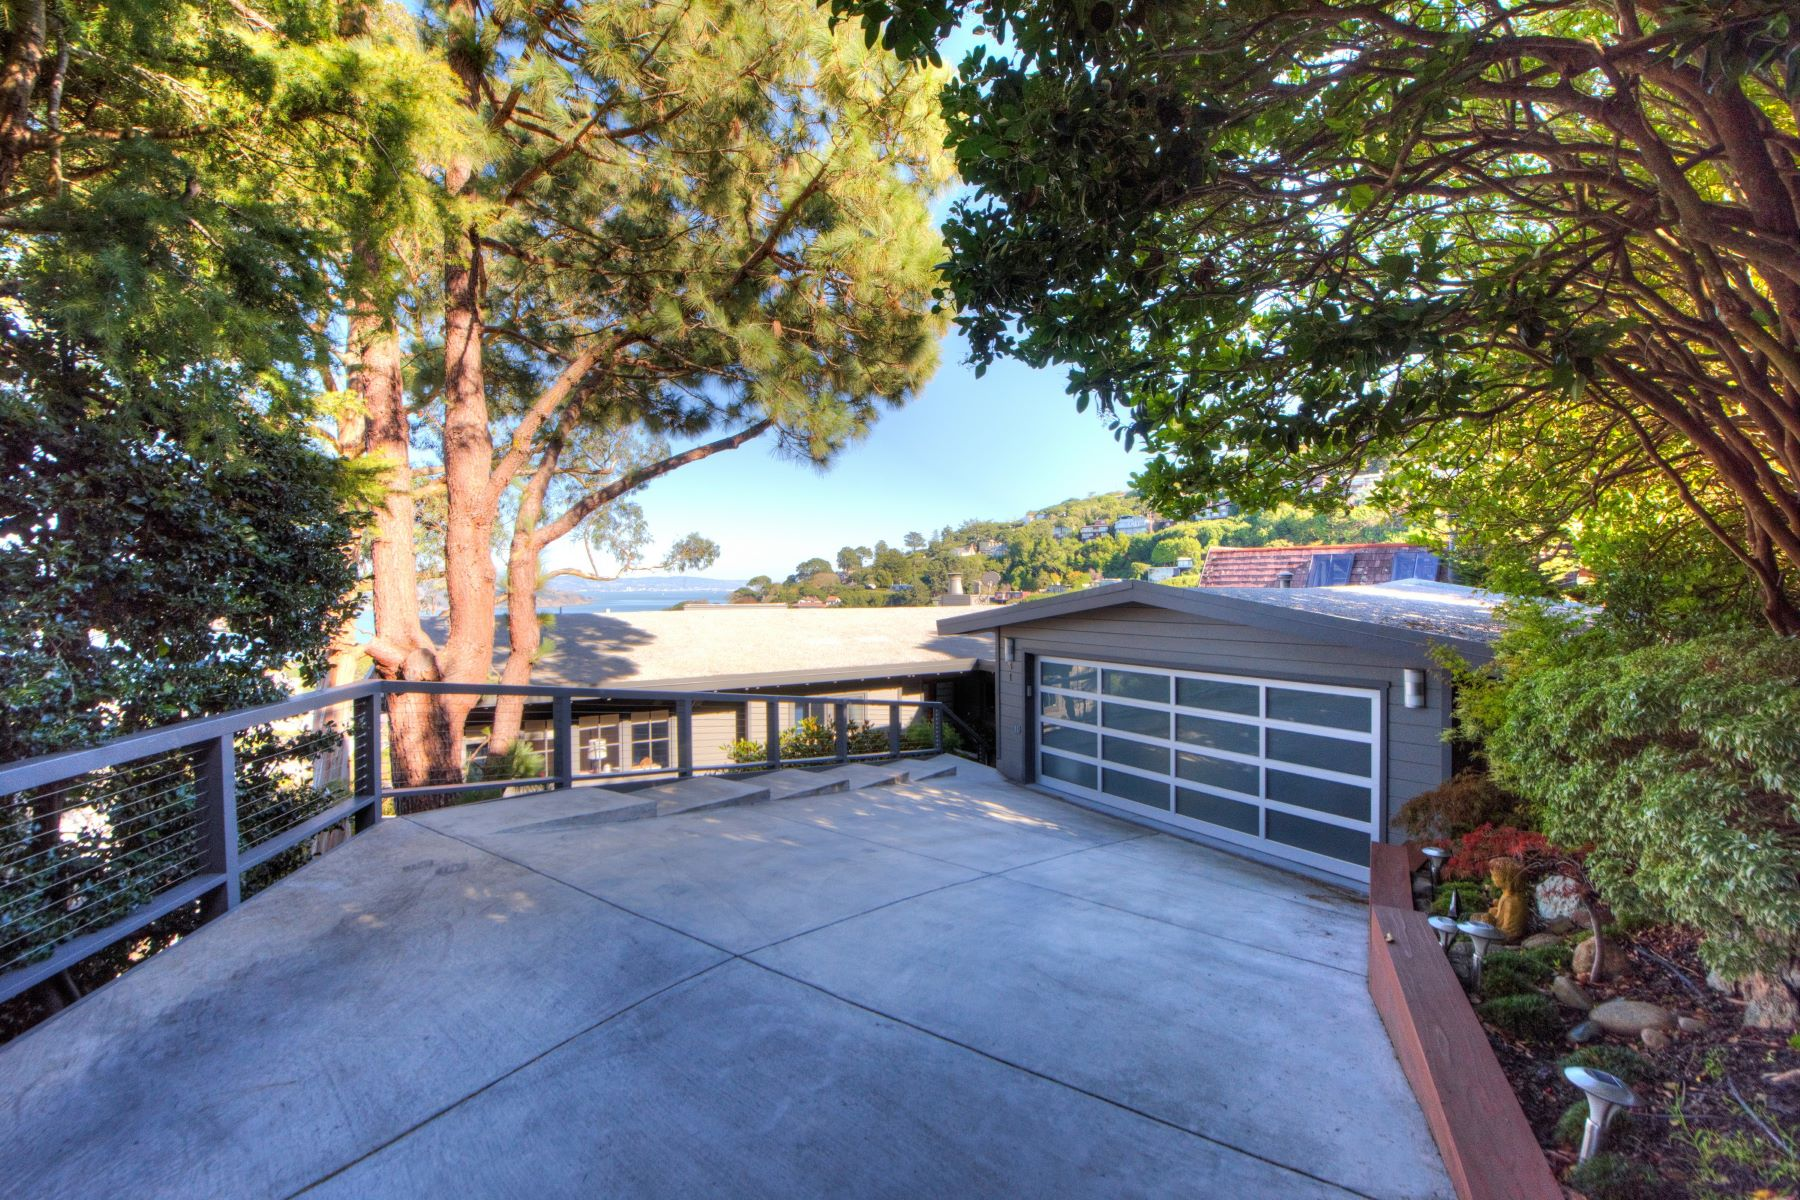 Maison unifamiliale pour l Vente à Contemporary with Stunning Bay Views! 51 George Lane Sausalito, Californie 94965 États-Unis